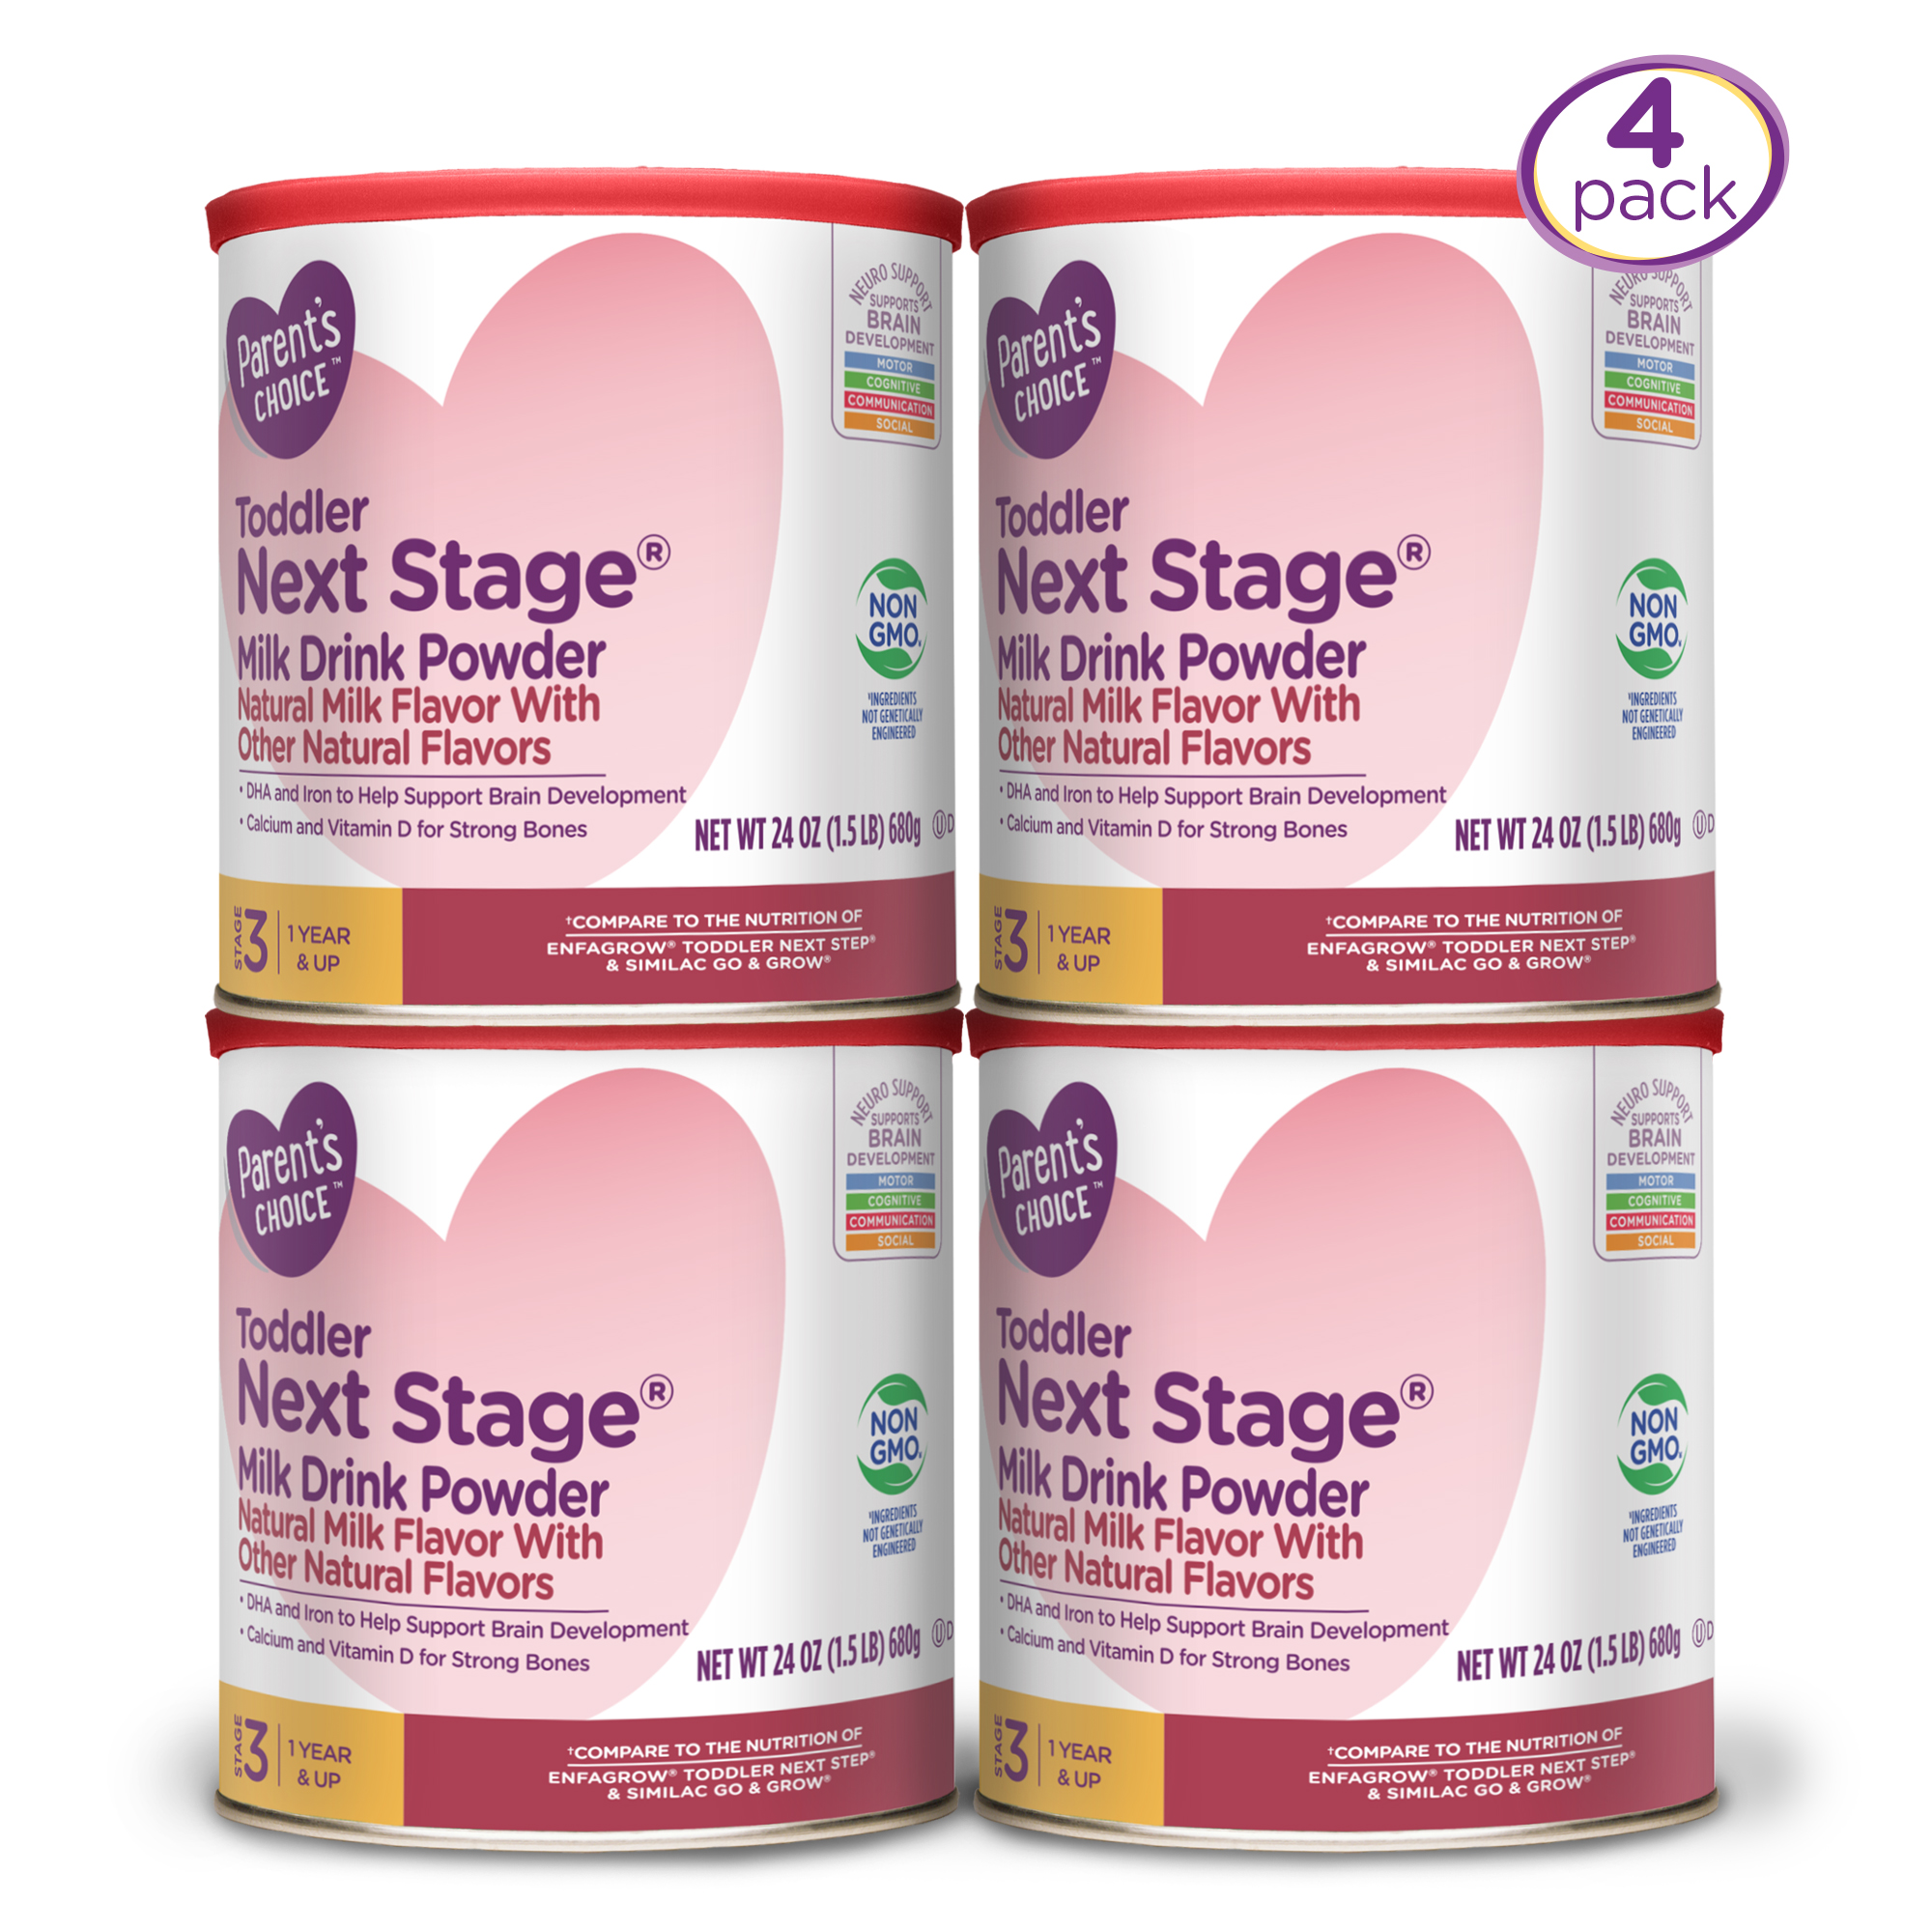 Parent's Choice Non-GMO Toddler Formula Natural Milk Economy Pack (4 cans of 24oz each) 96oz.